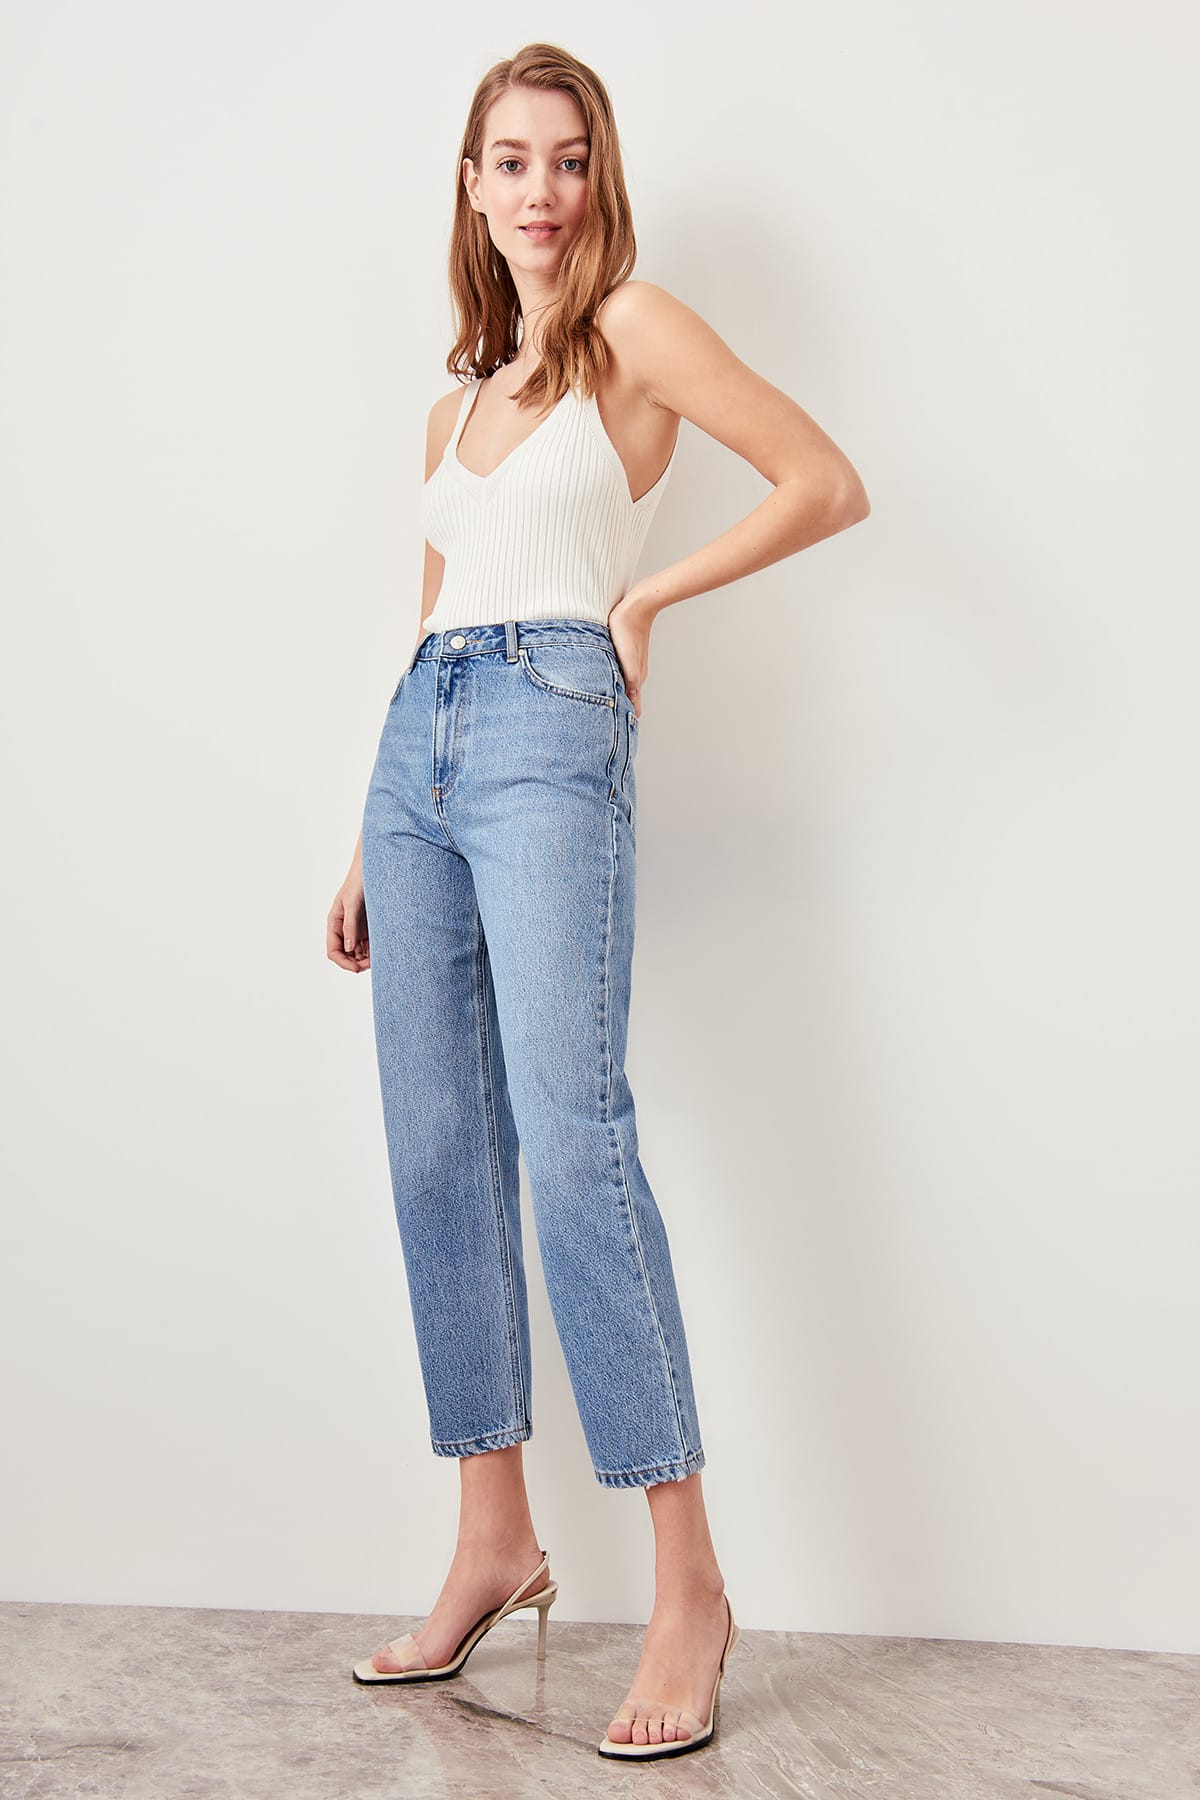 Trendyol Blue Black High Waist Boyfriend Jeans Straight-leg Casual Denim Ankle-length Pant TWOSS19LR0176